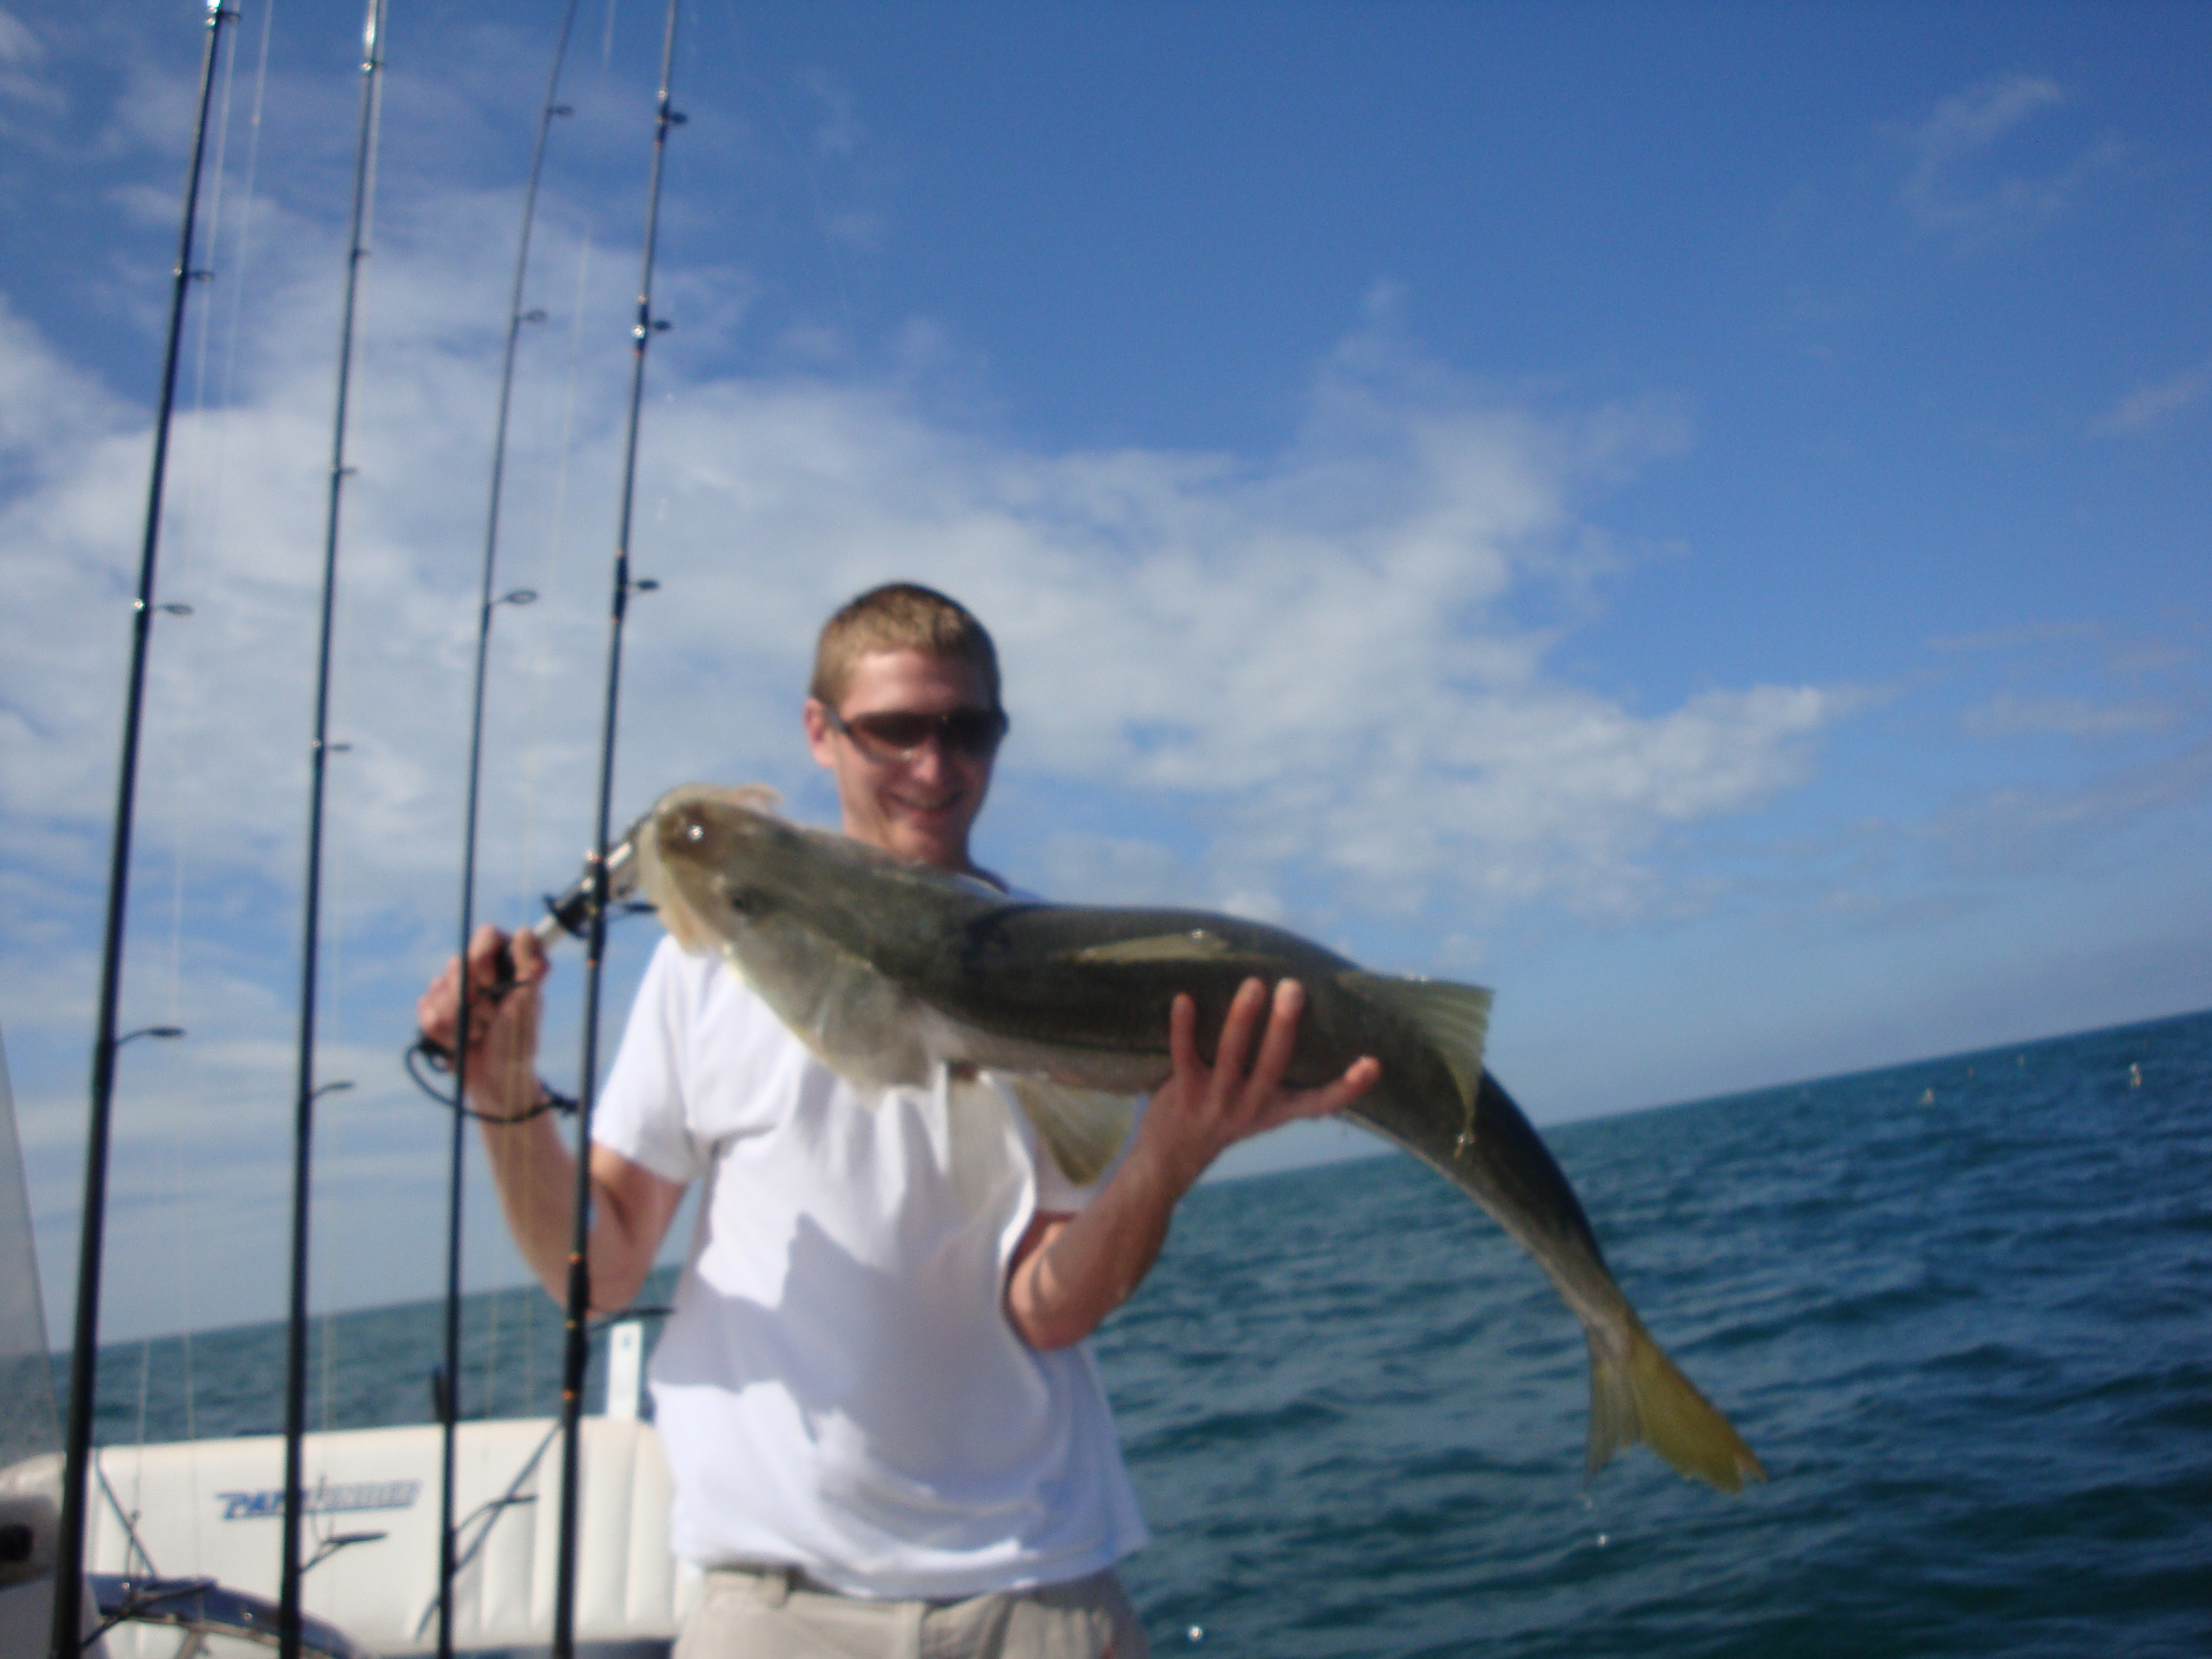 Naples florida fishing charter justin naples fl fishing for Fishing charters naples fl